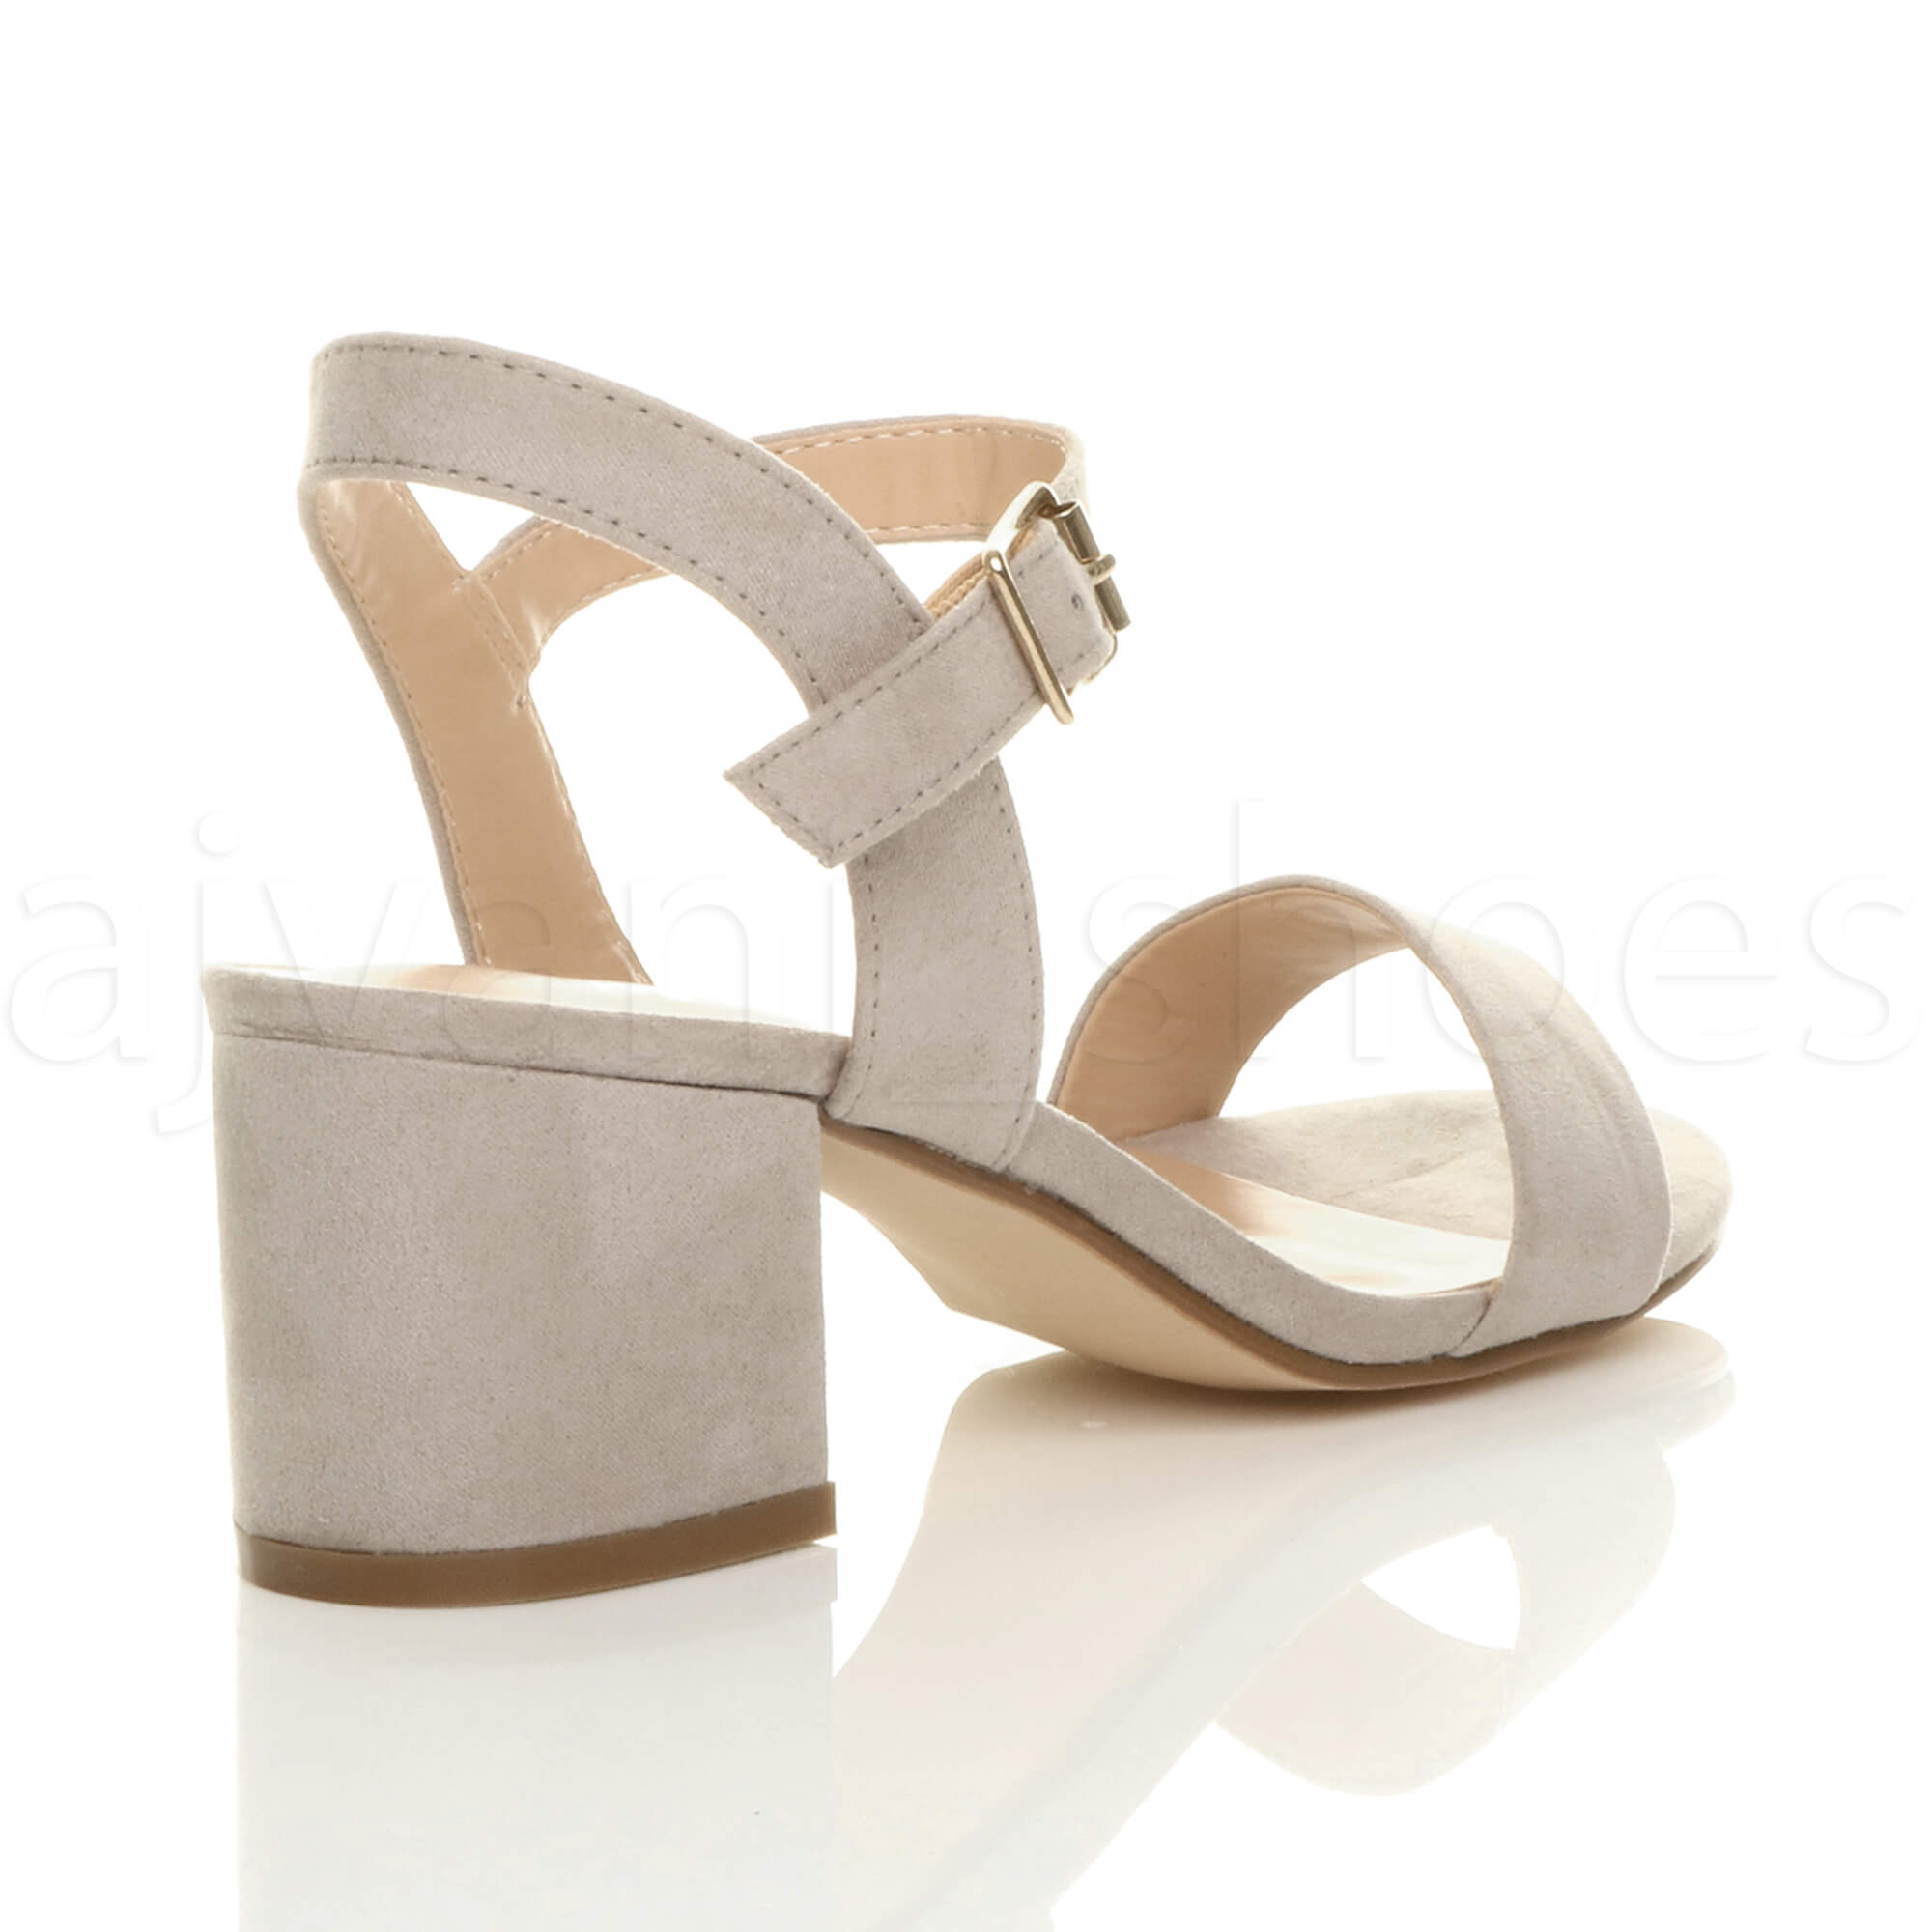 WOMENS-LADIES-MID-LOW-BLOCK-HEEL-PEEP-TOE-ANKLE-STRAP-STRAPPY-PARTY-SANDALS-SIZE thumbnail 69